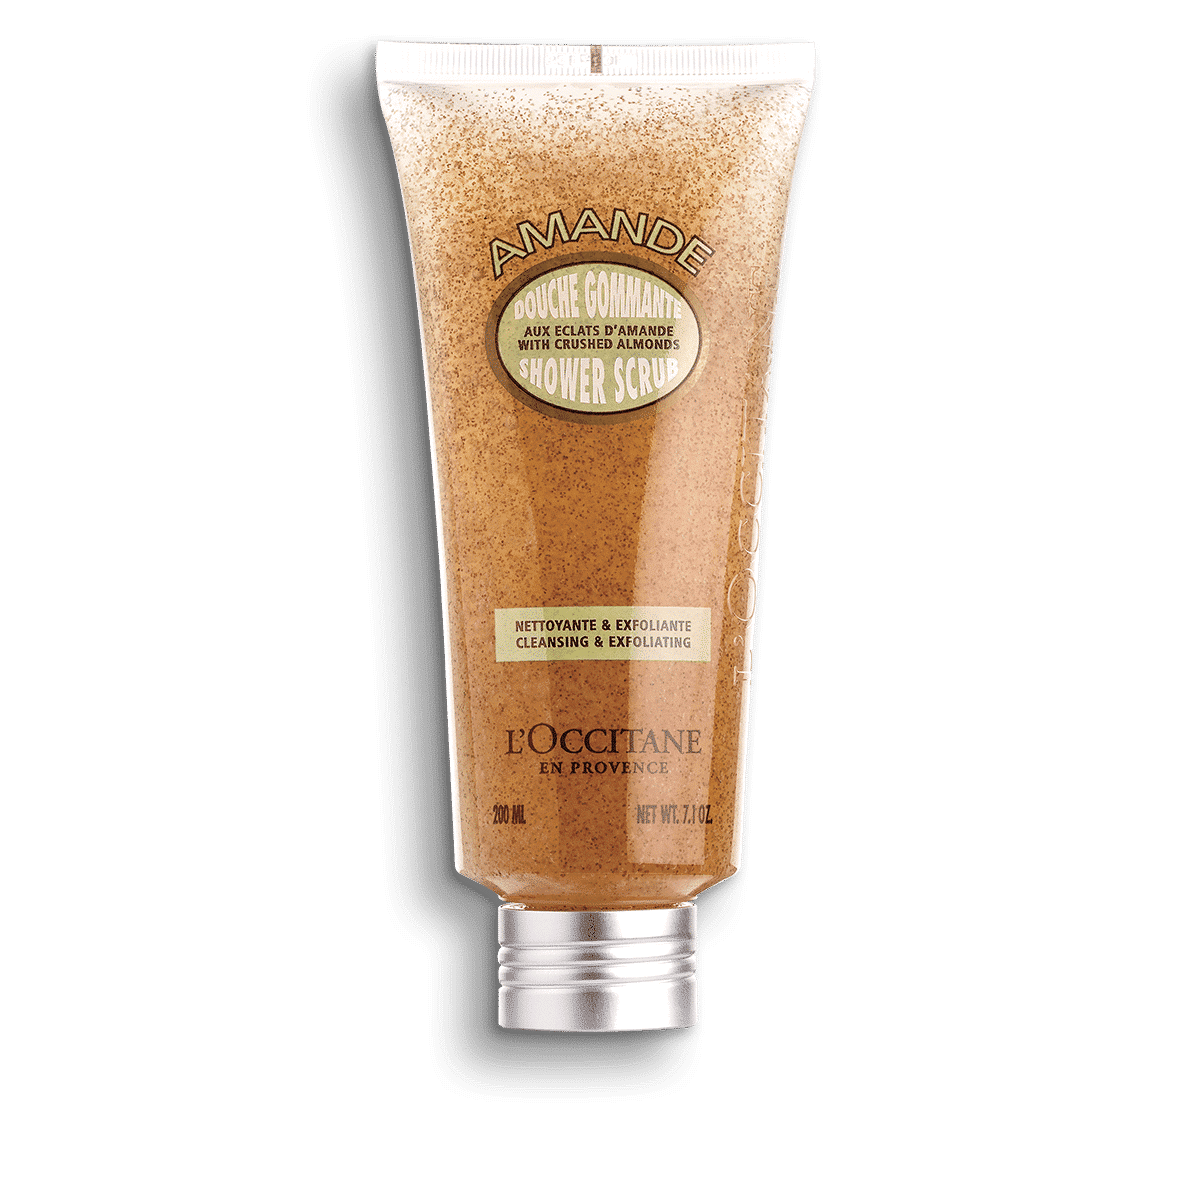 L'Occitane Almond Shower Body Scrub is 14 Best Body Exfoliators for Smooth Skin